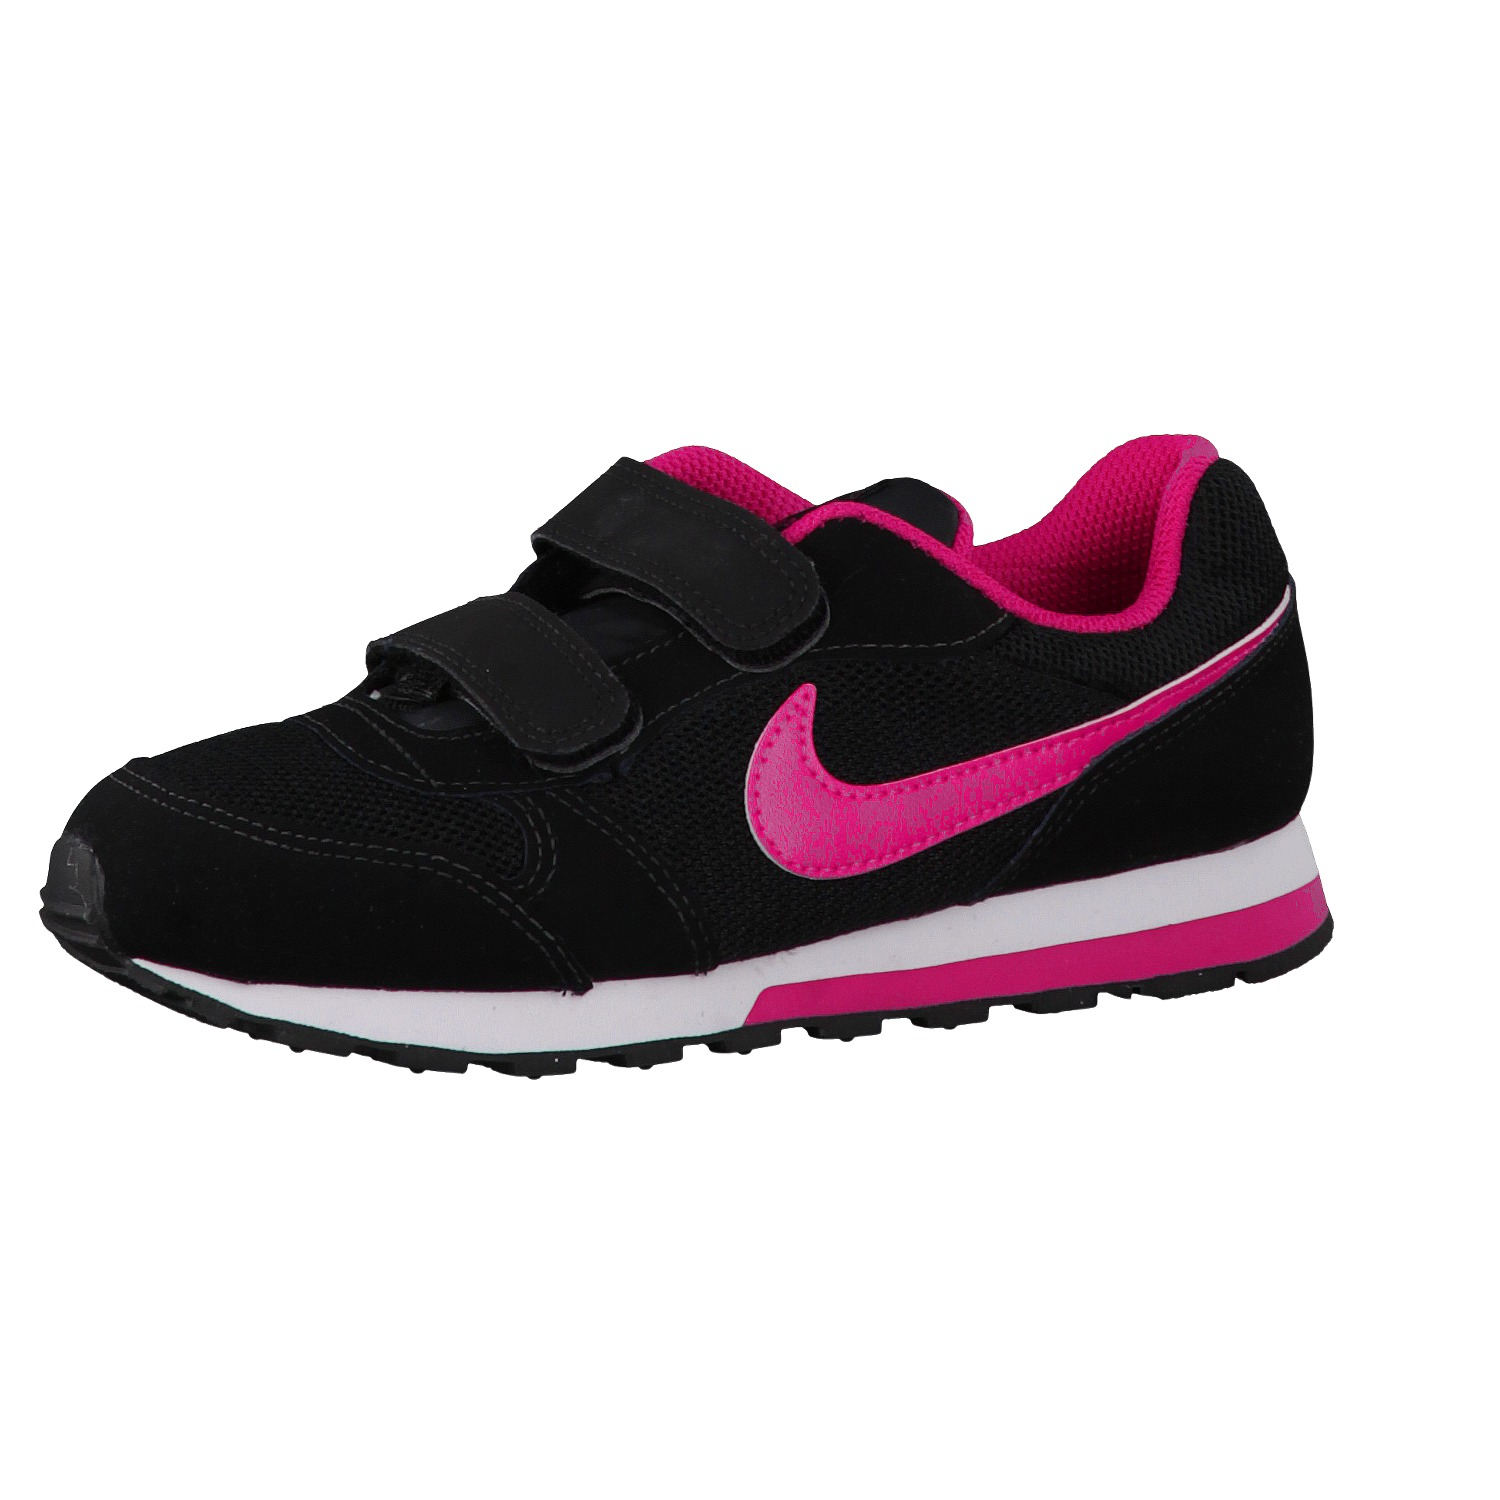 Nike Kinder Sneaker MD Runner 2 (PSV) 807320-006 29.5